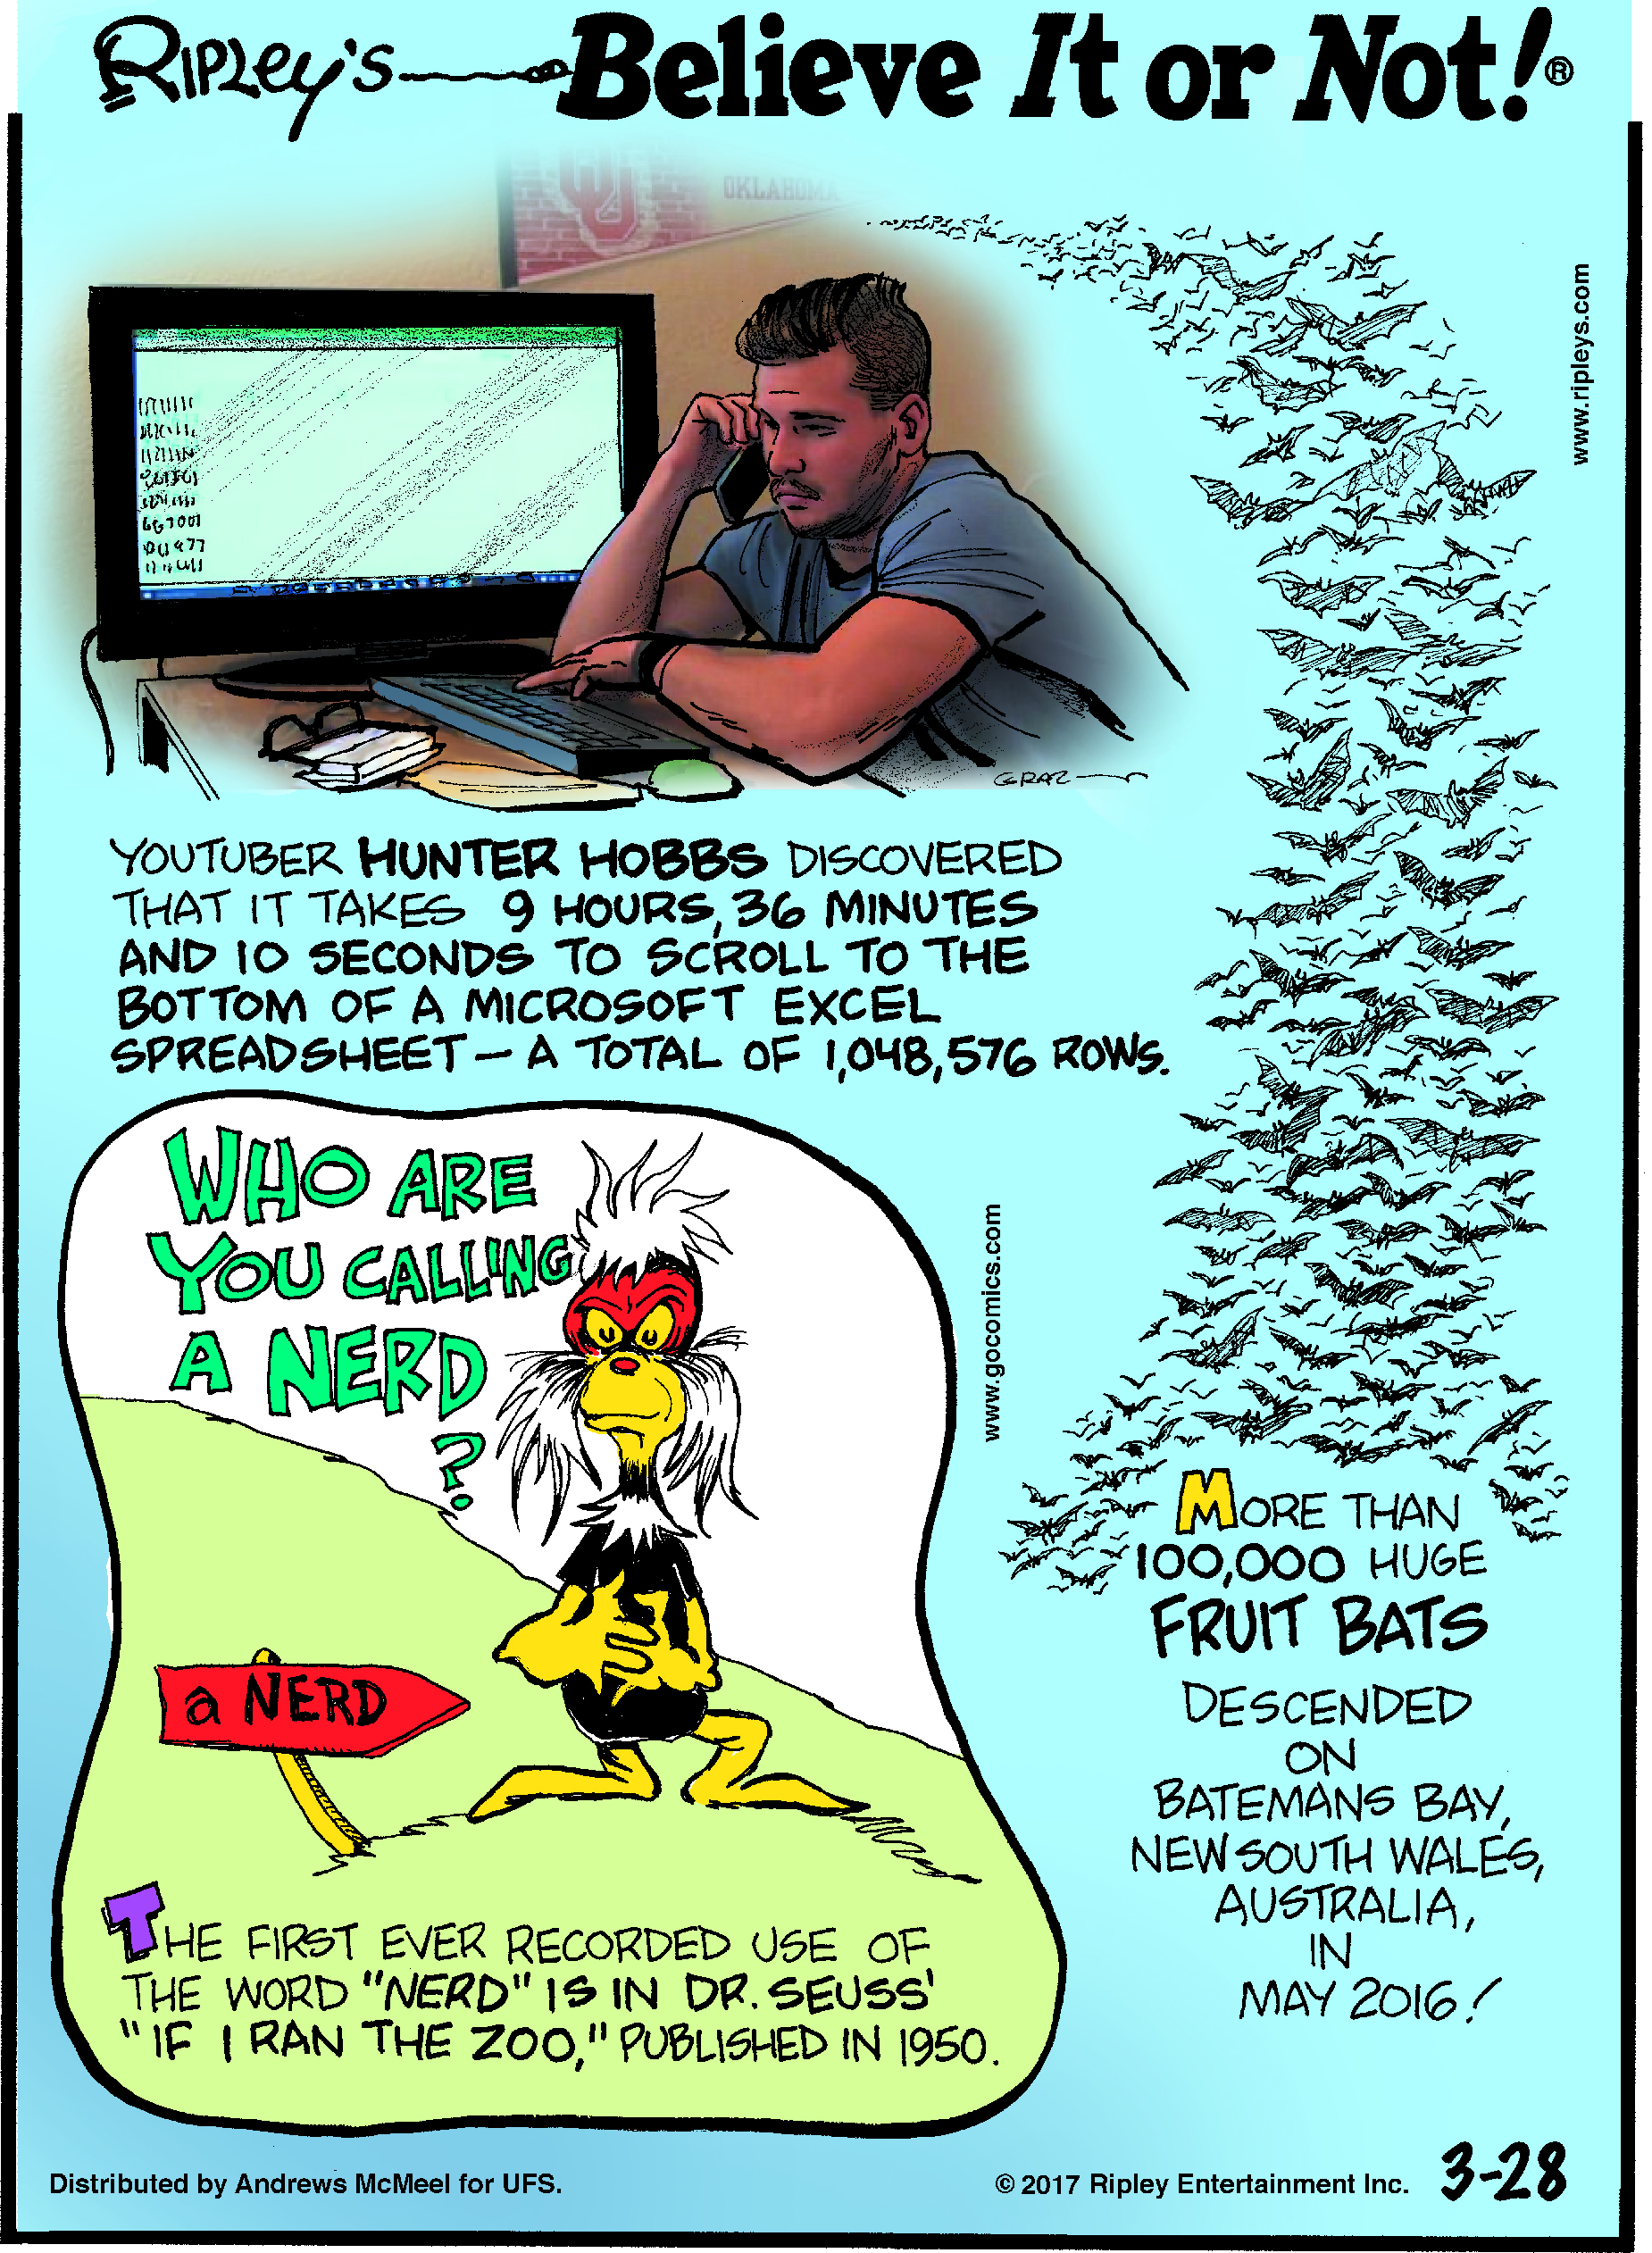 "Youtuber Hunter Hobbs discovered that it takes 9 hours, 36 minutes and 10 seconds to scroll to the bottom of a Microsoft Excel spreadsheet - a total of 1,048,576 rows.--------------------The first ever recorded use of the word ""nerd"" is in Dr. Seuss' ""If I Ran the Zoo,"" published in 1950.-------------------- More than 1000,000 huge fruit bats descended on Batemans Bay, New South Wales, Australia, in May 2016!"